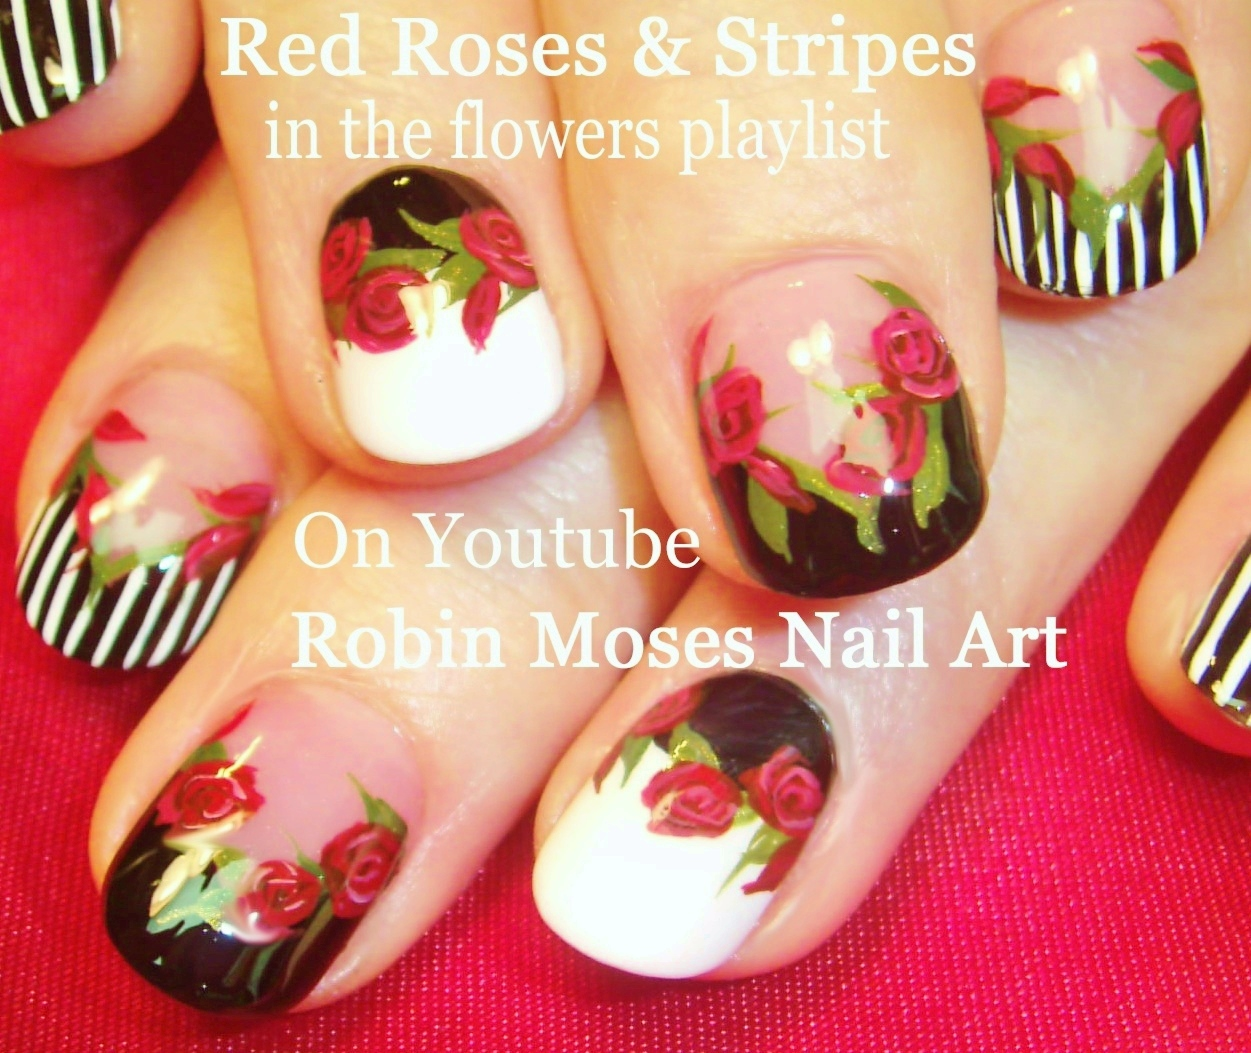 Robin moses nail art red roses on black tips roses do it flower nails playlist of easy flower nail art tutorials floral nail designs ideas for beginners to advanced nail techs solutioingenieria Image collections